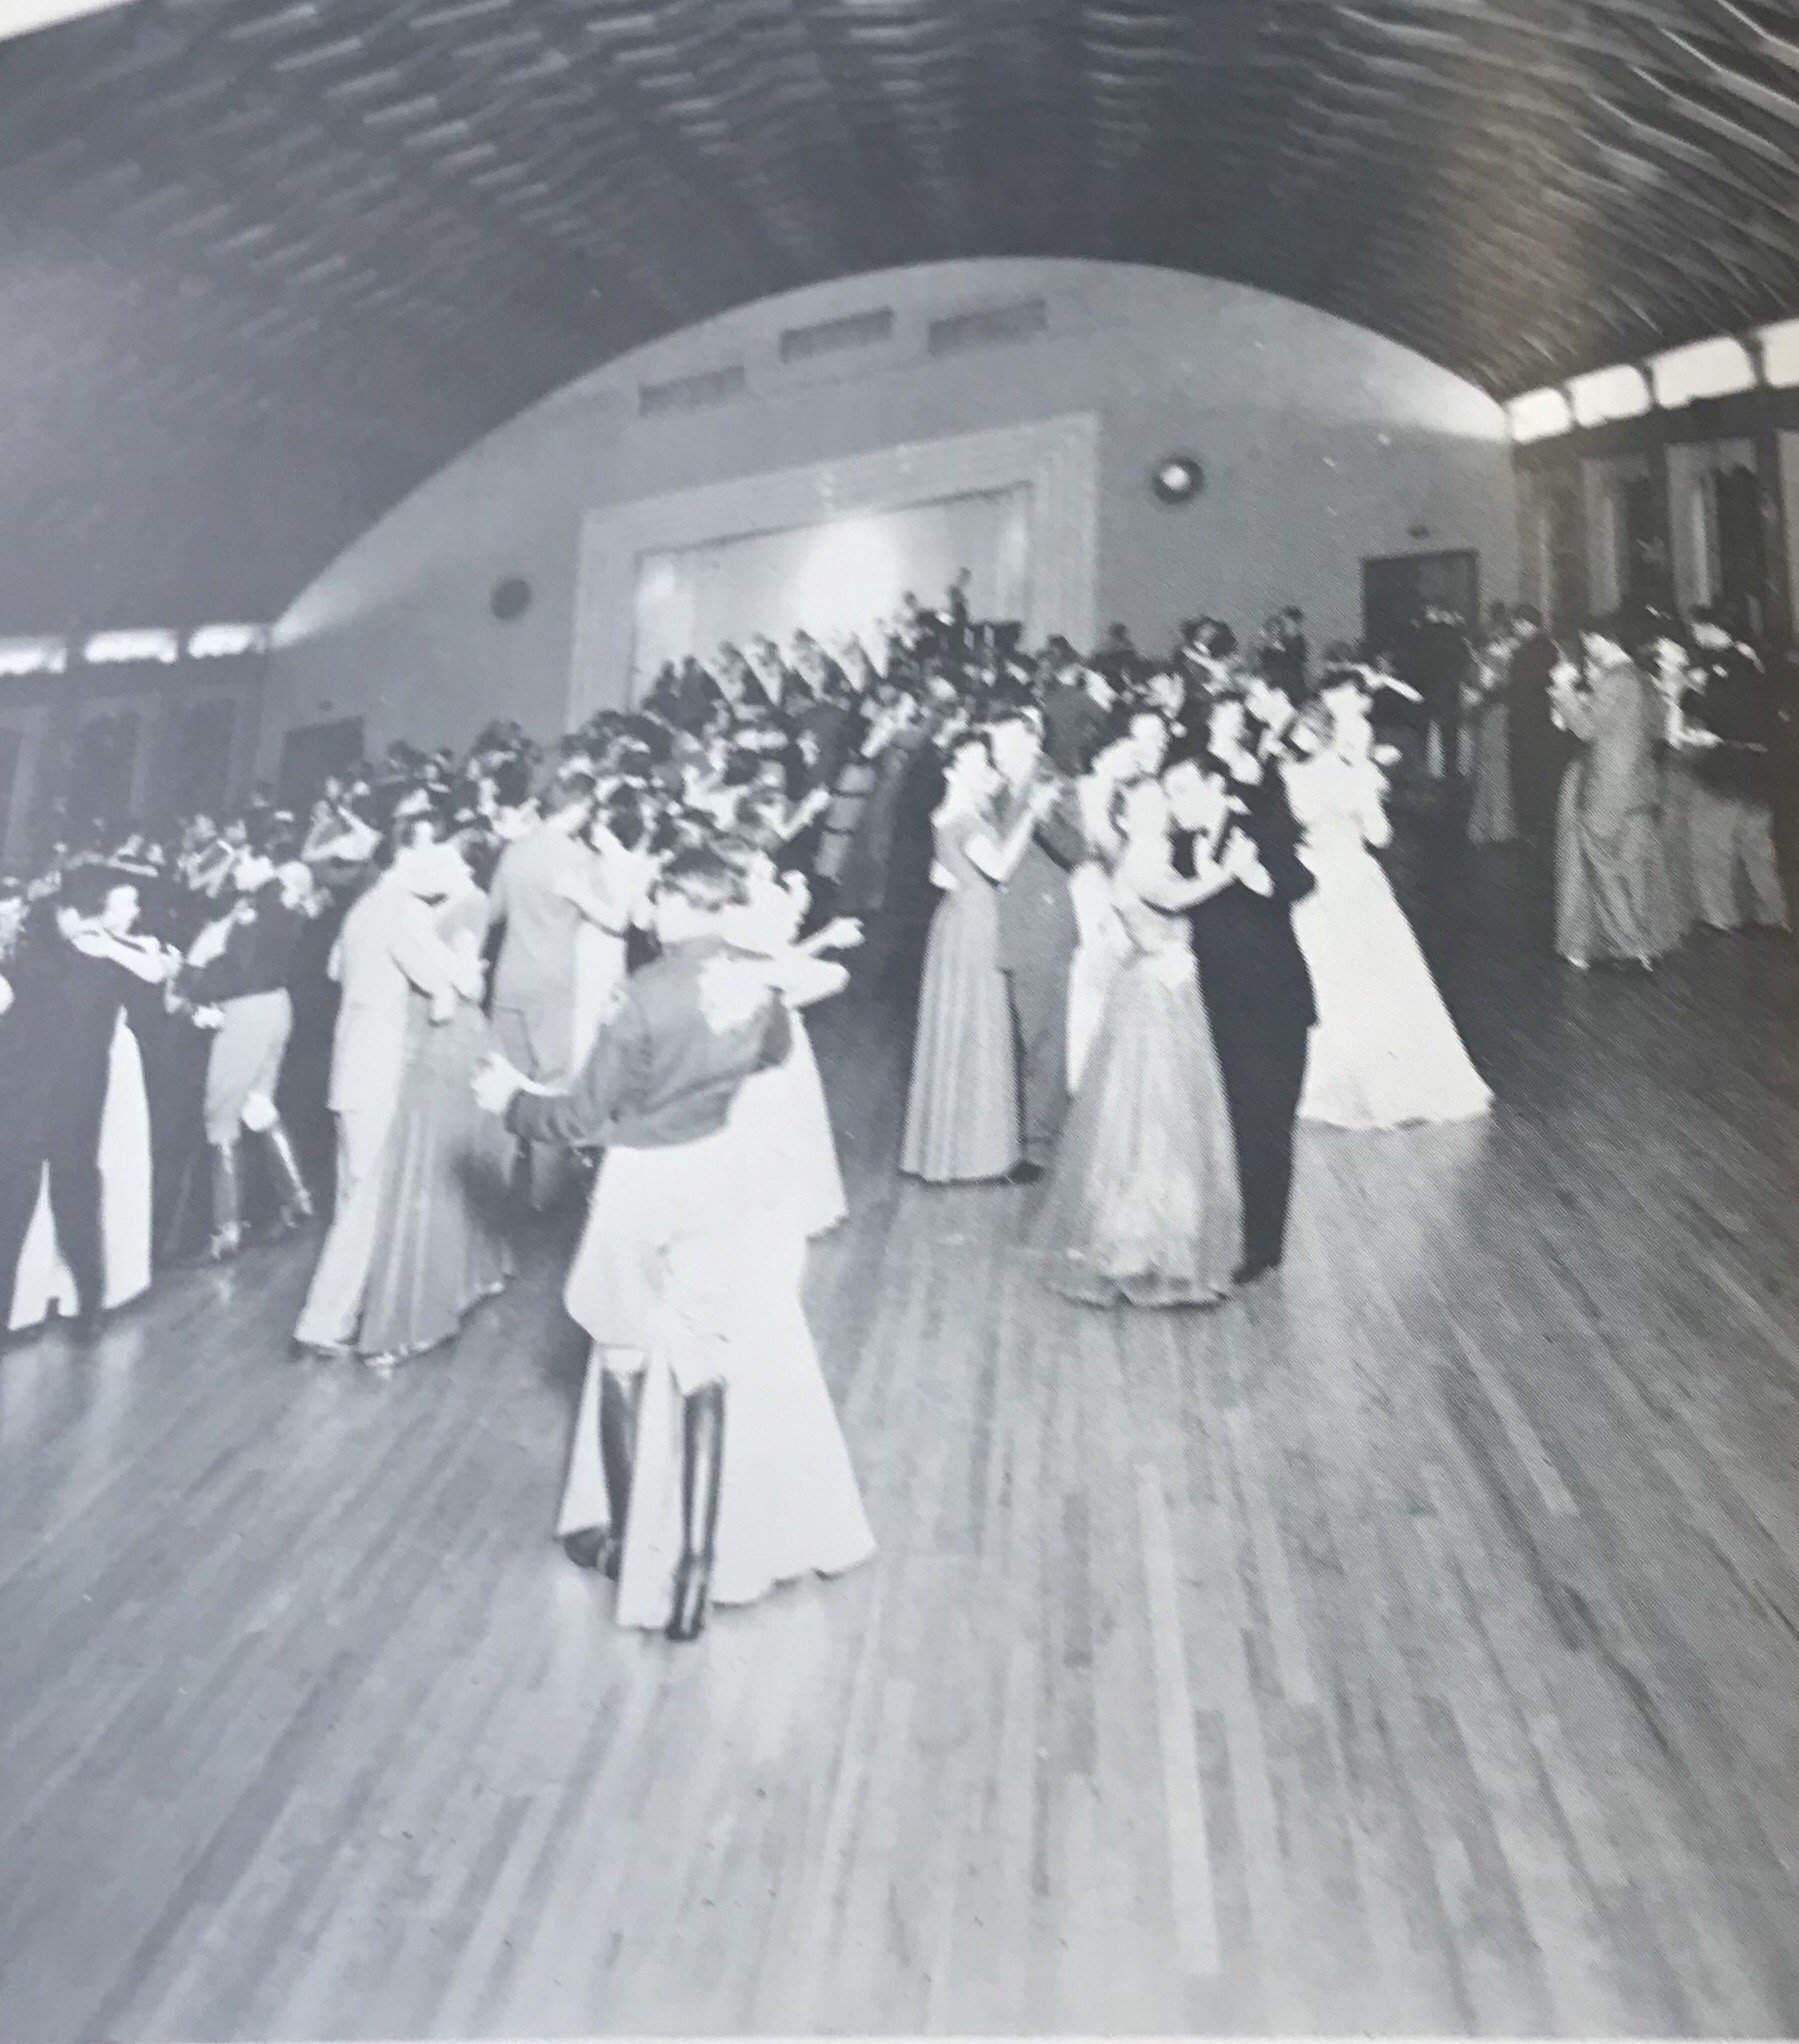 A dance in the ballroom in 1947.